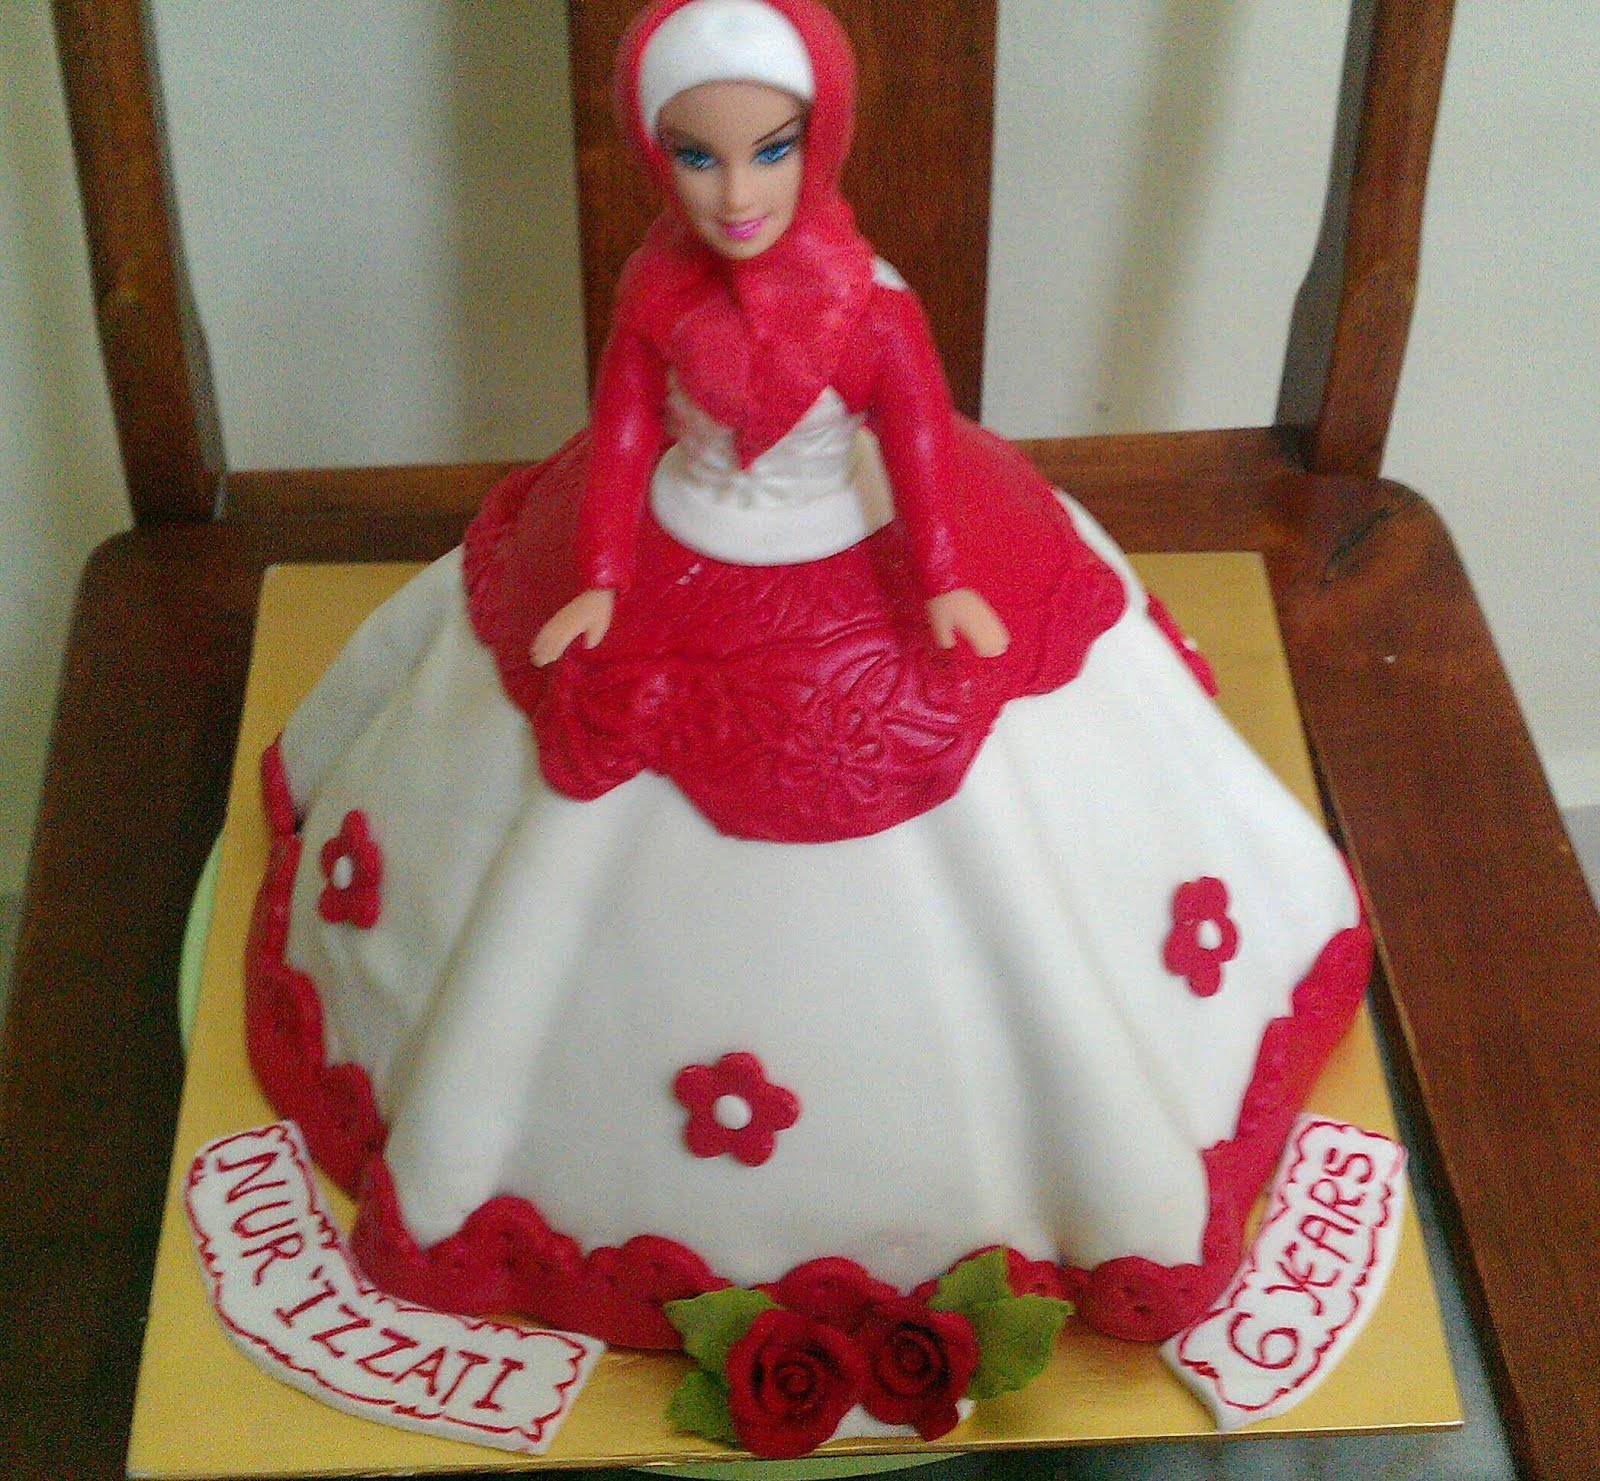 Zairie Homemade Delights 3D Muslimah Doll Cake